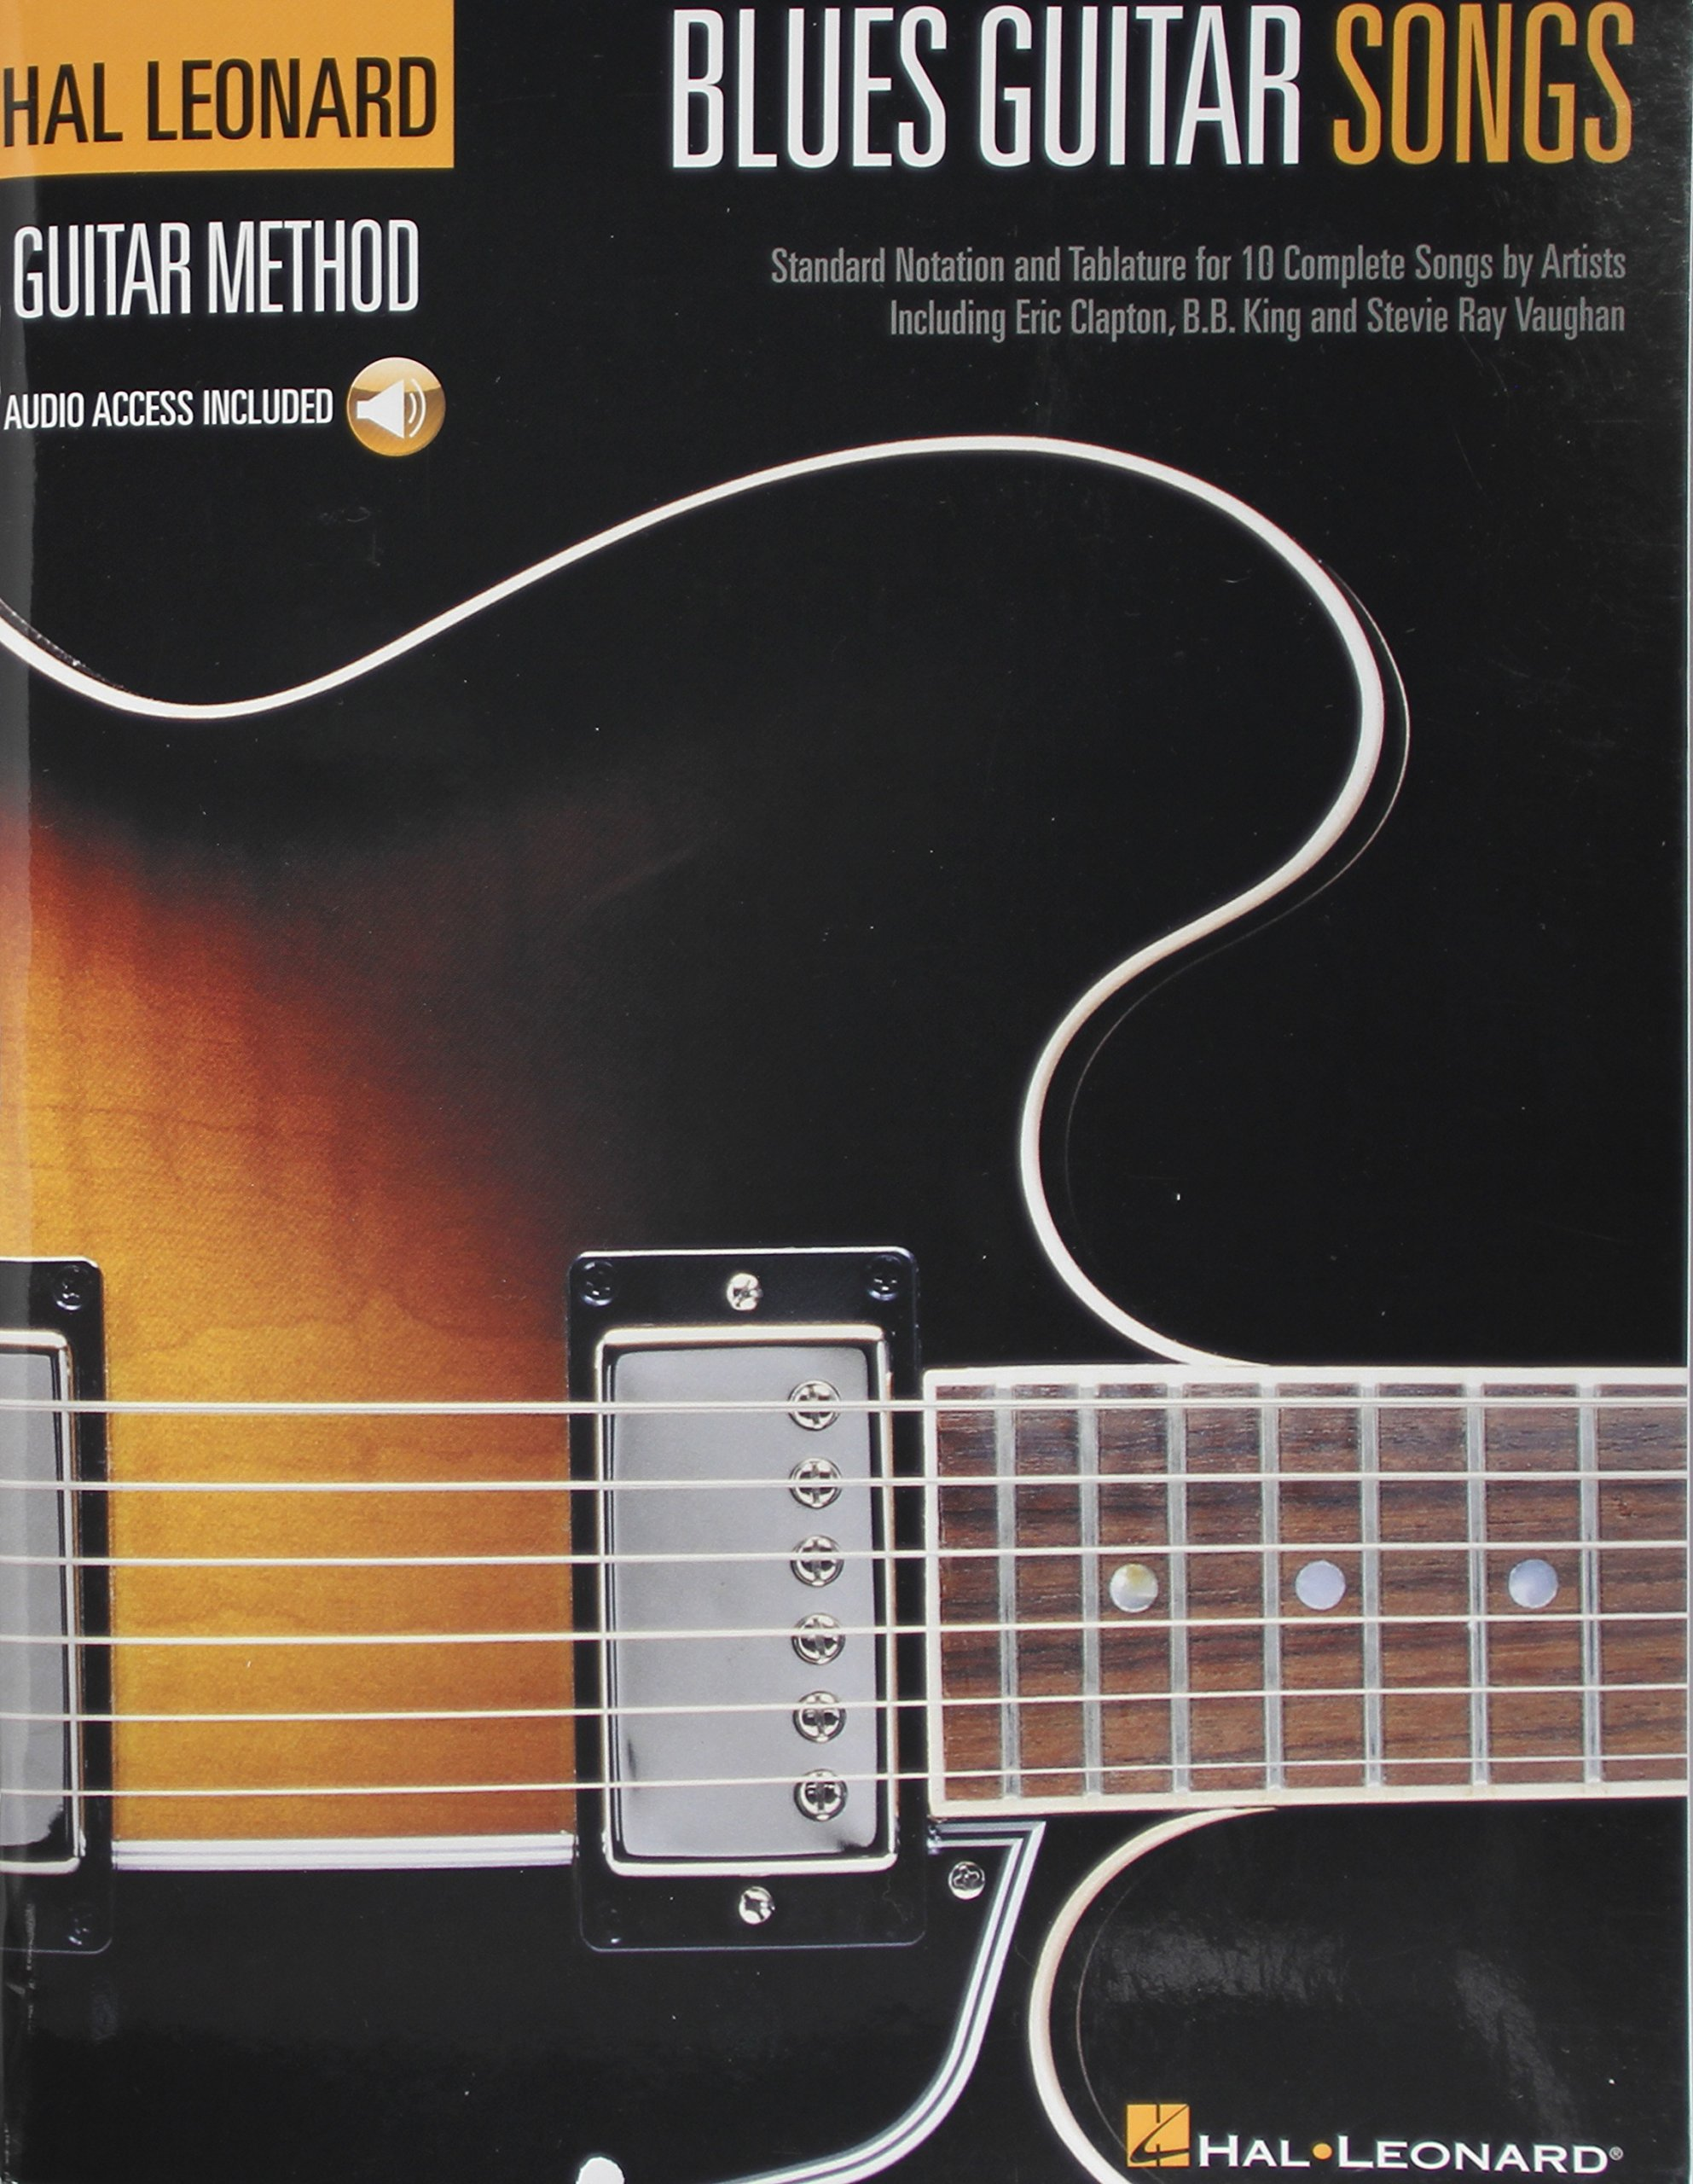 Blues Guitar Songs Tab Book Includes Online Access Code